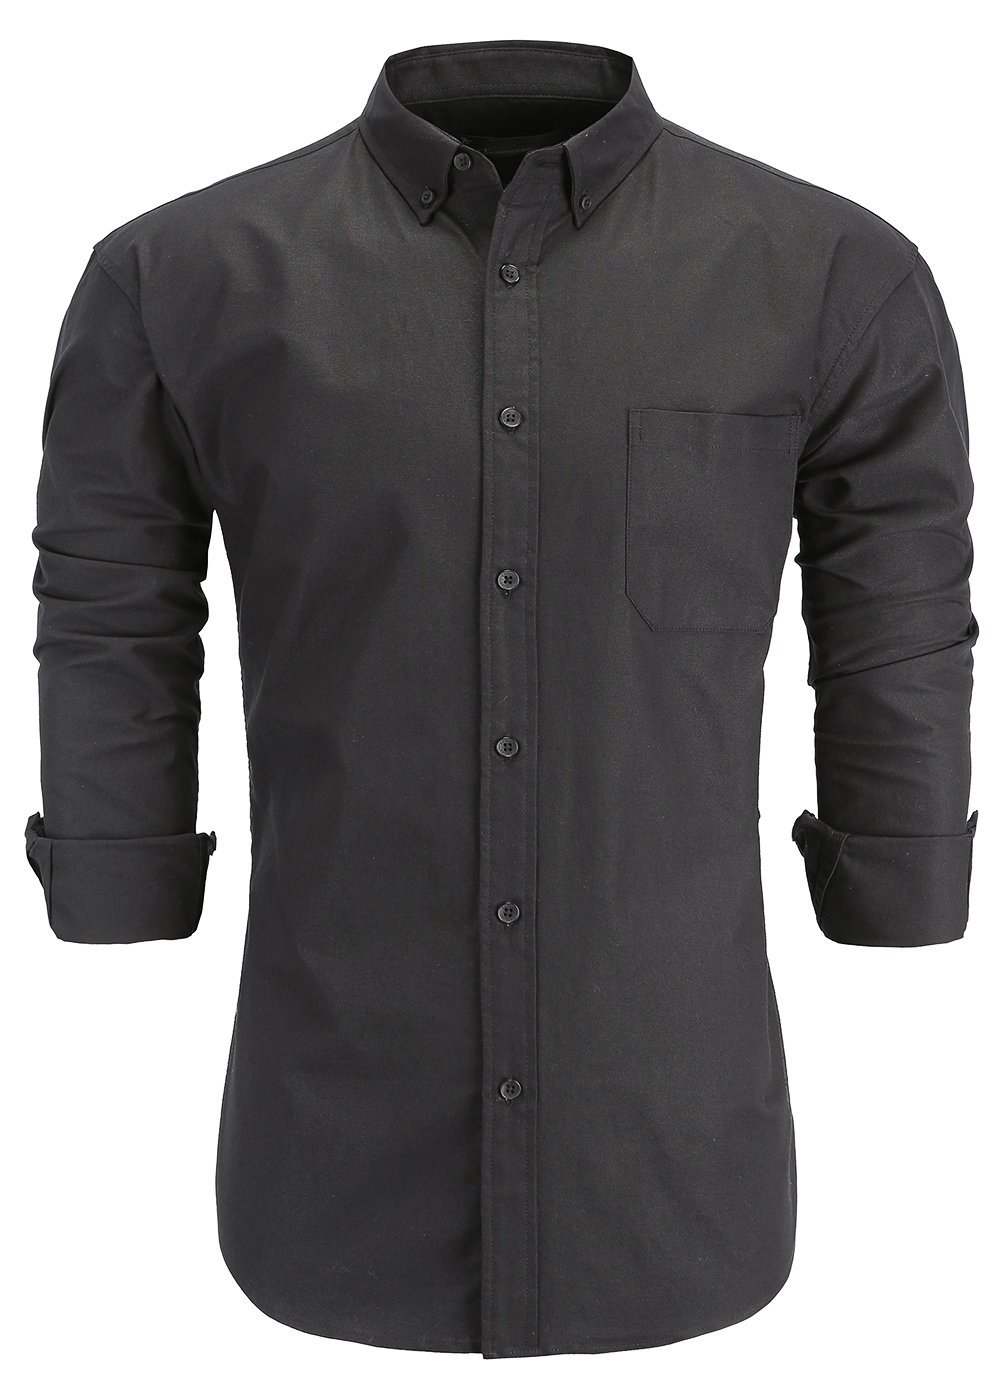 GoldCut Men's 100% Oxford Cotton Slim Fit Long Sleeve Button-Down Dress Shirts Large Black